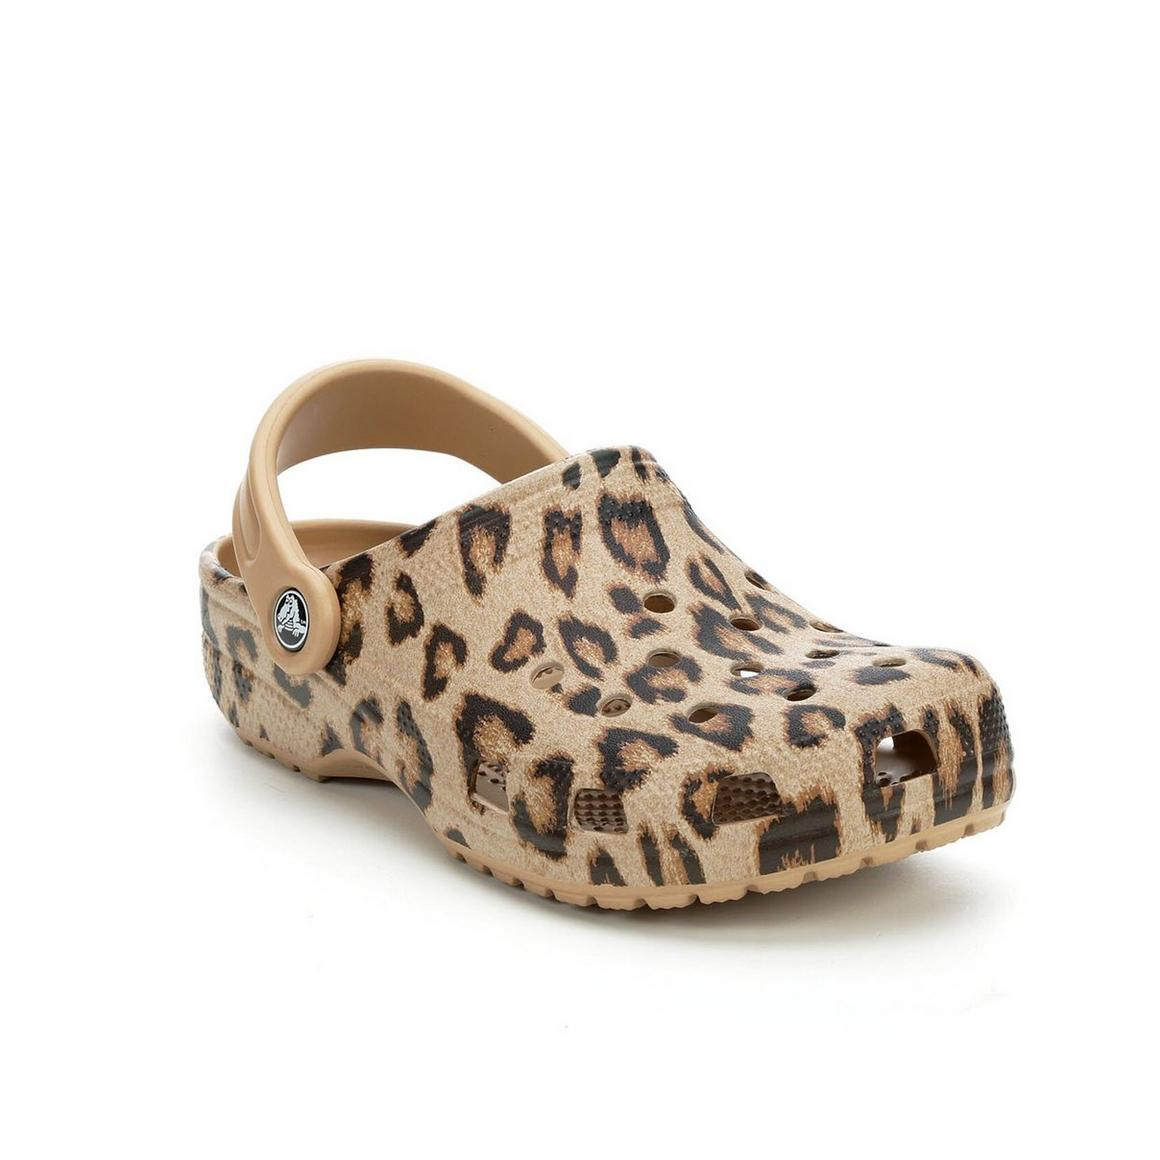 Crocs Classic Animal Print Clog -  Leopard/Gold 205838-98R